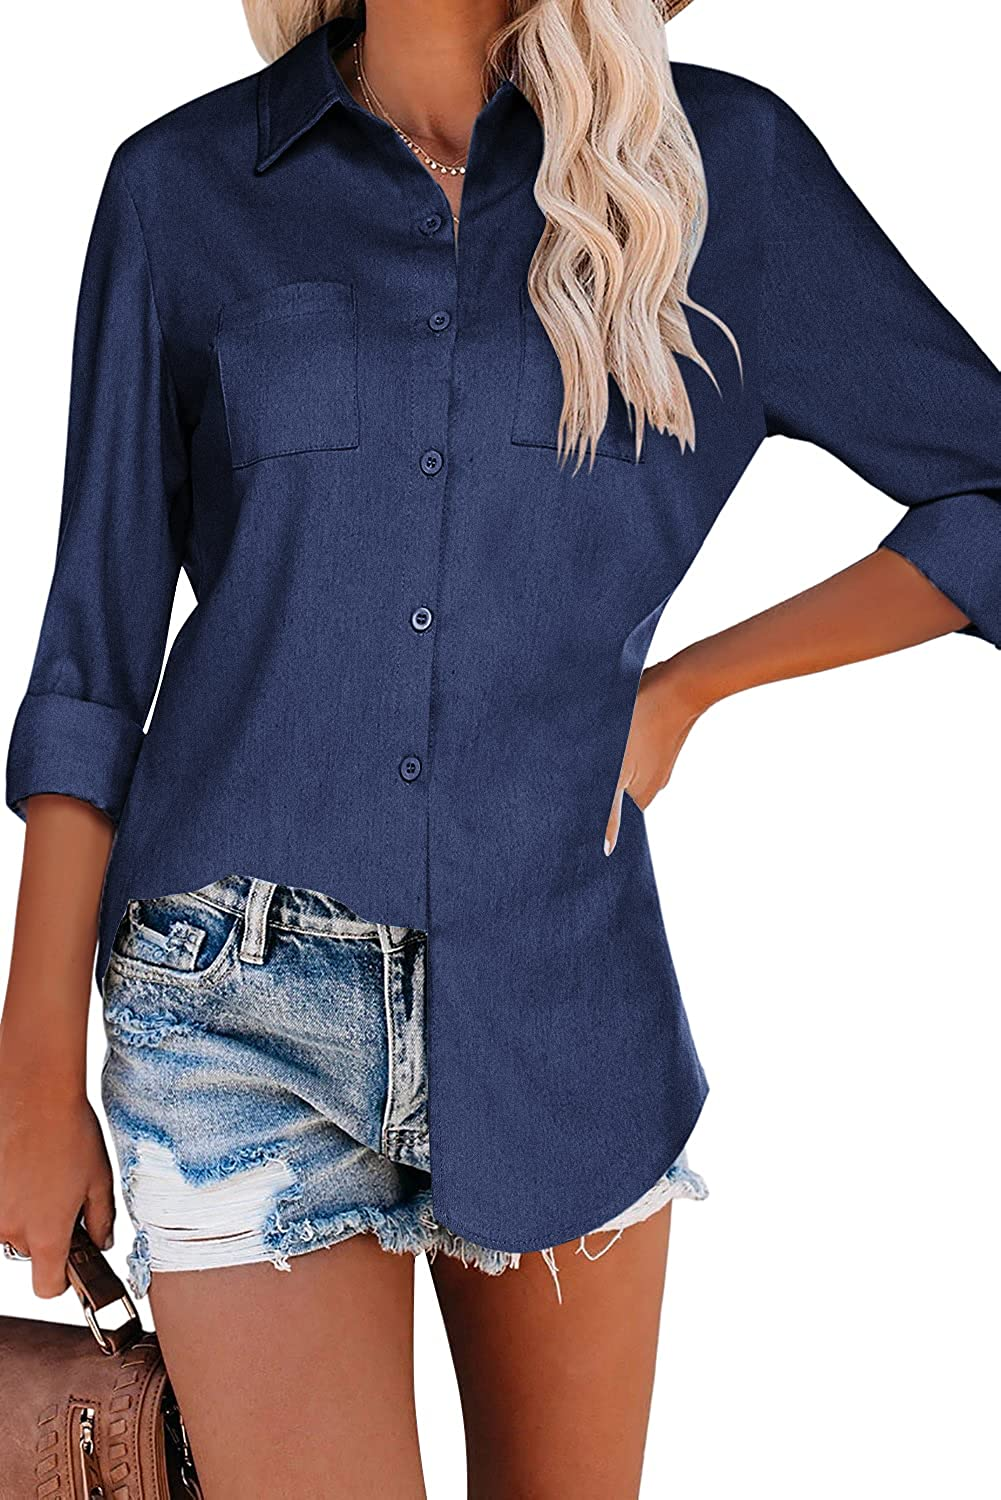 Hotouch Women Chambray Shirt Long Sleeve Button Up Long Jeans Shirt Denim Collared Blouse with Pockets